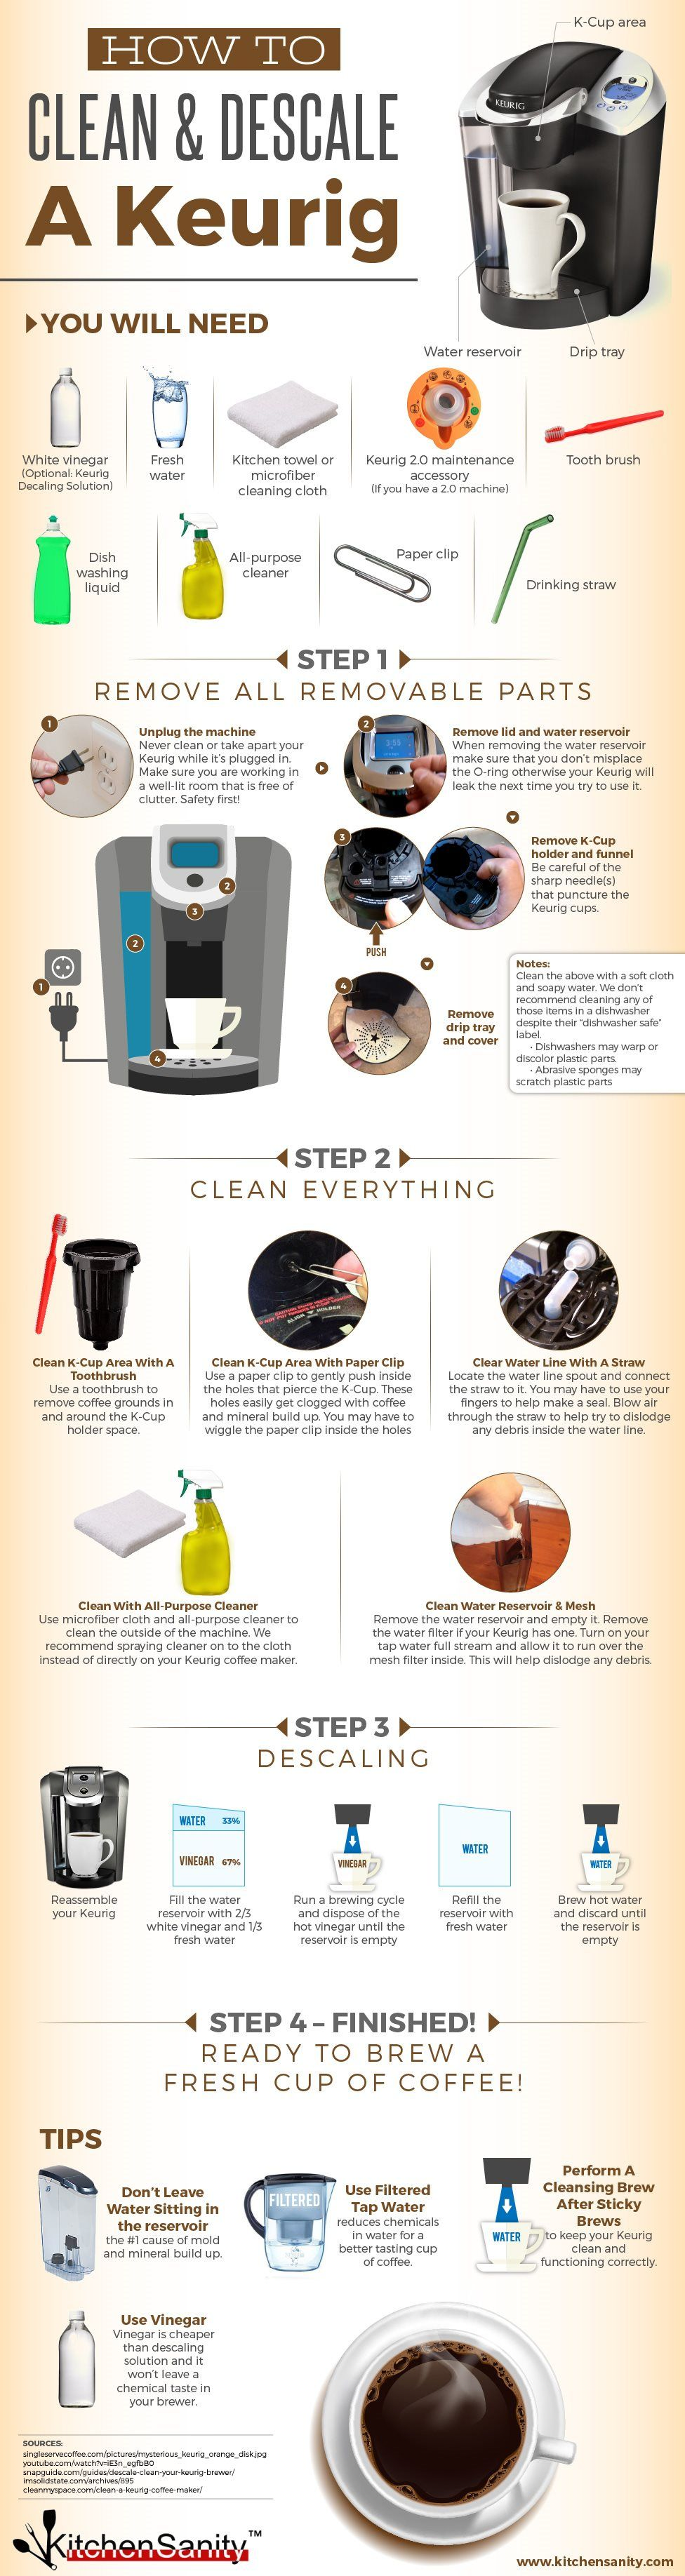 Guide How To Clean And Descale A Keurig Coffee Maker